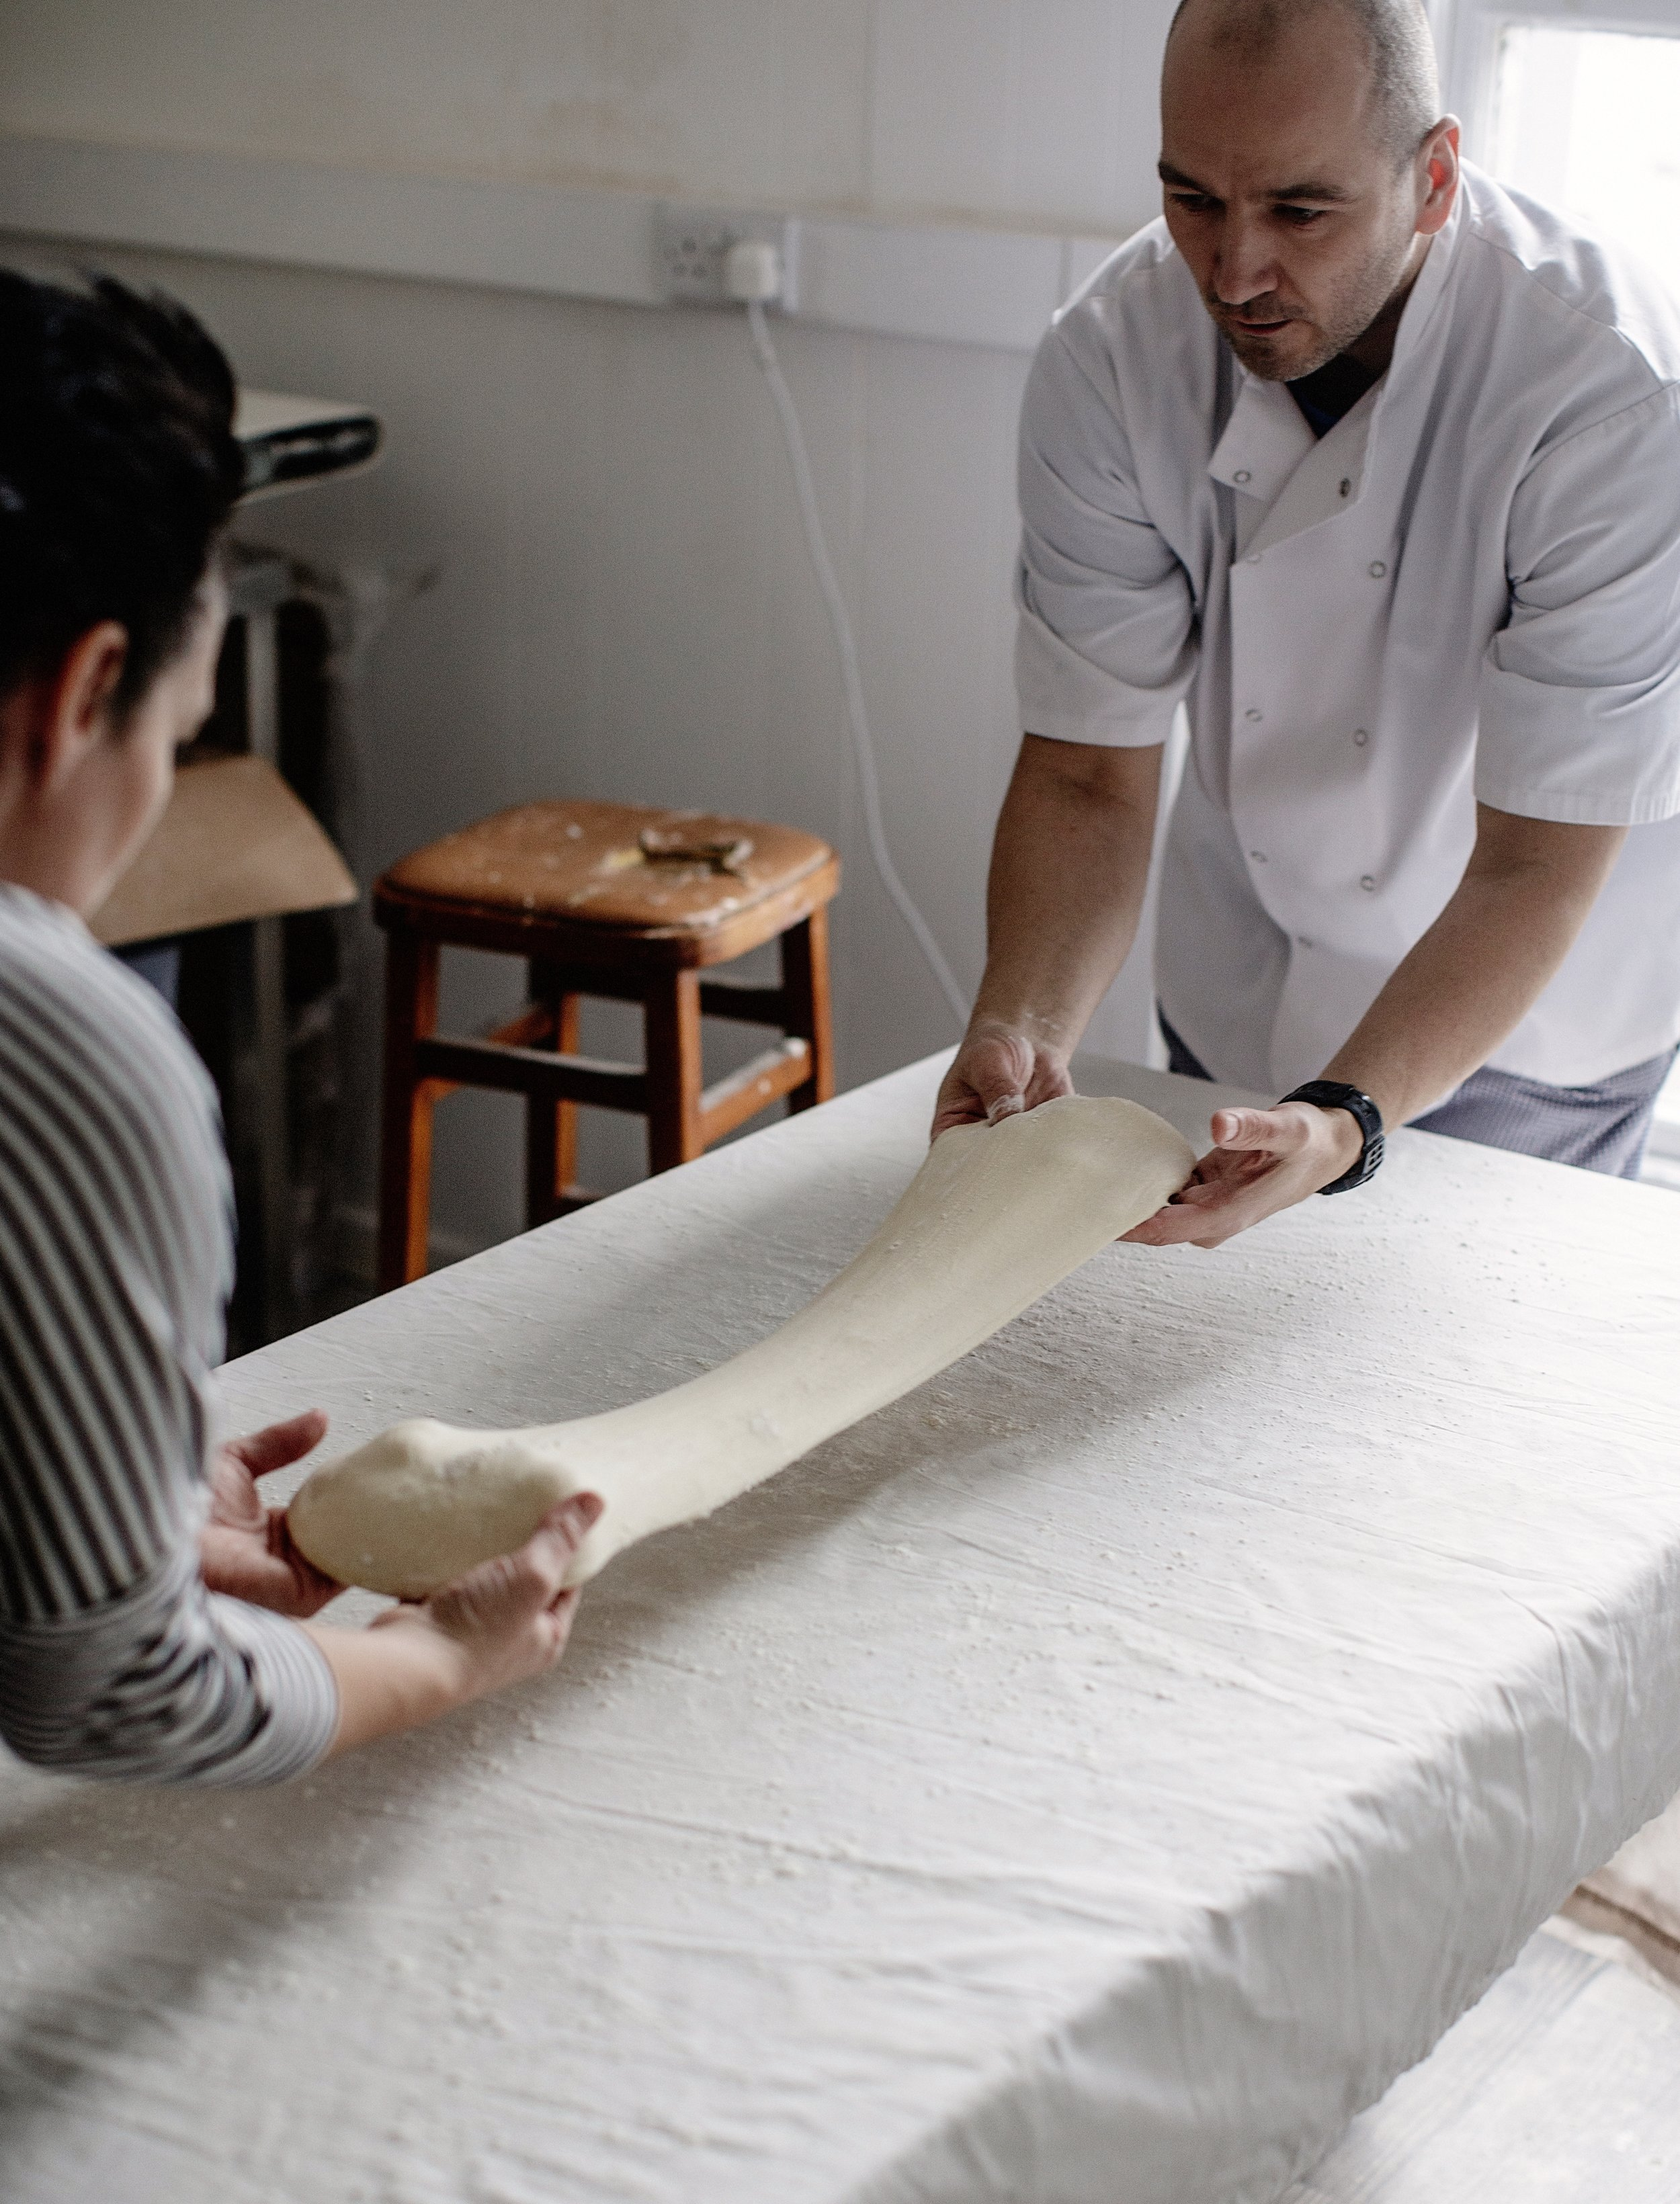 Stretching the dough is a two-person job.